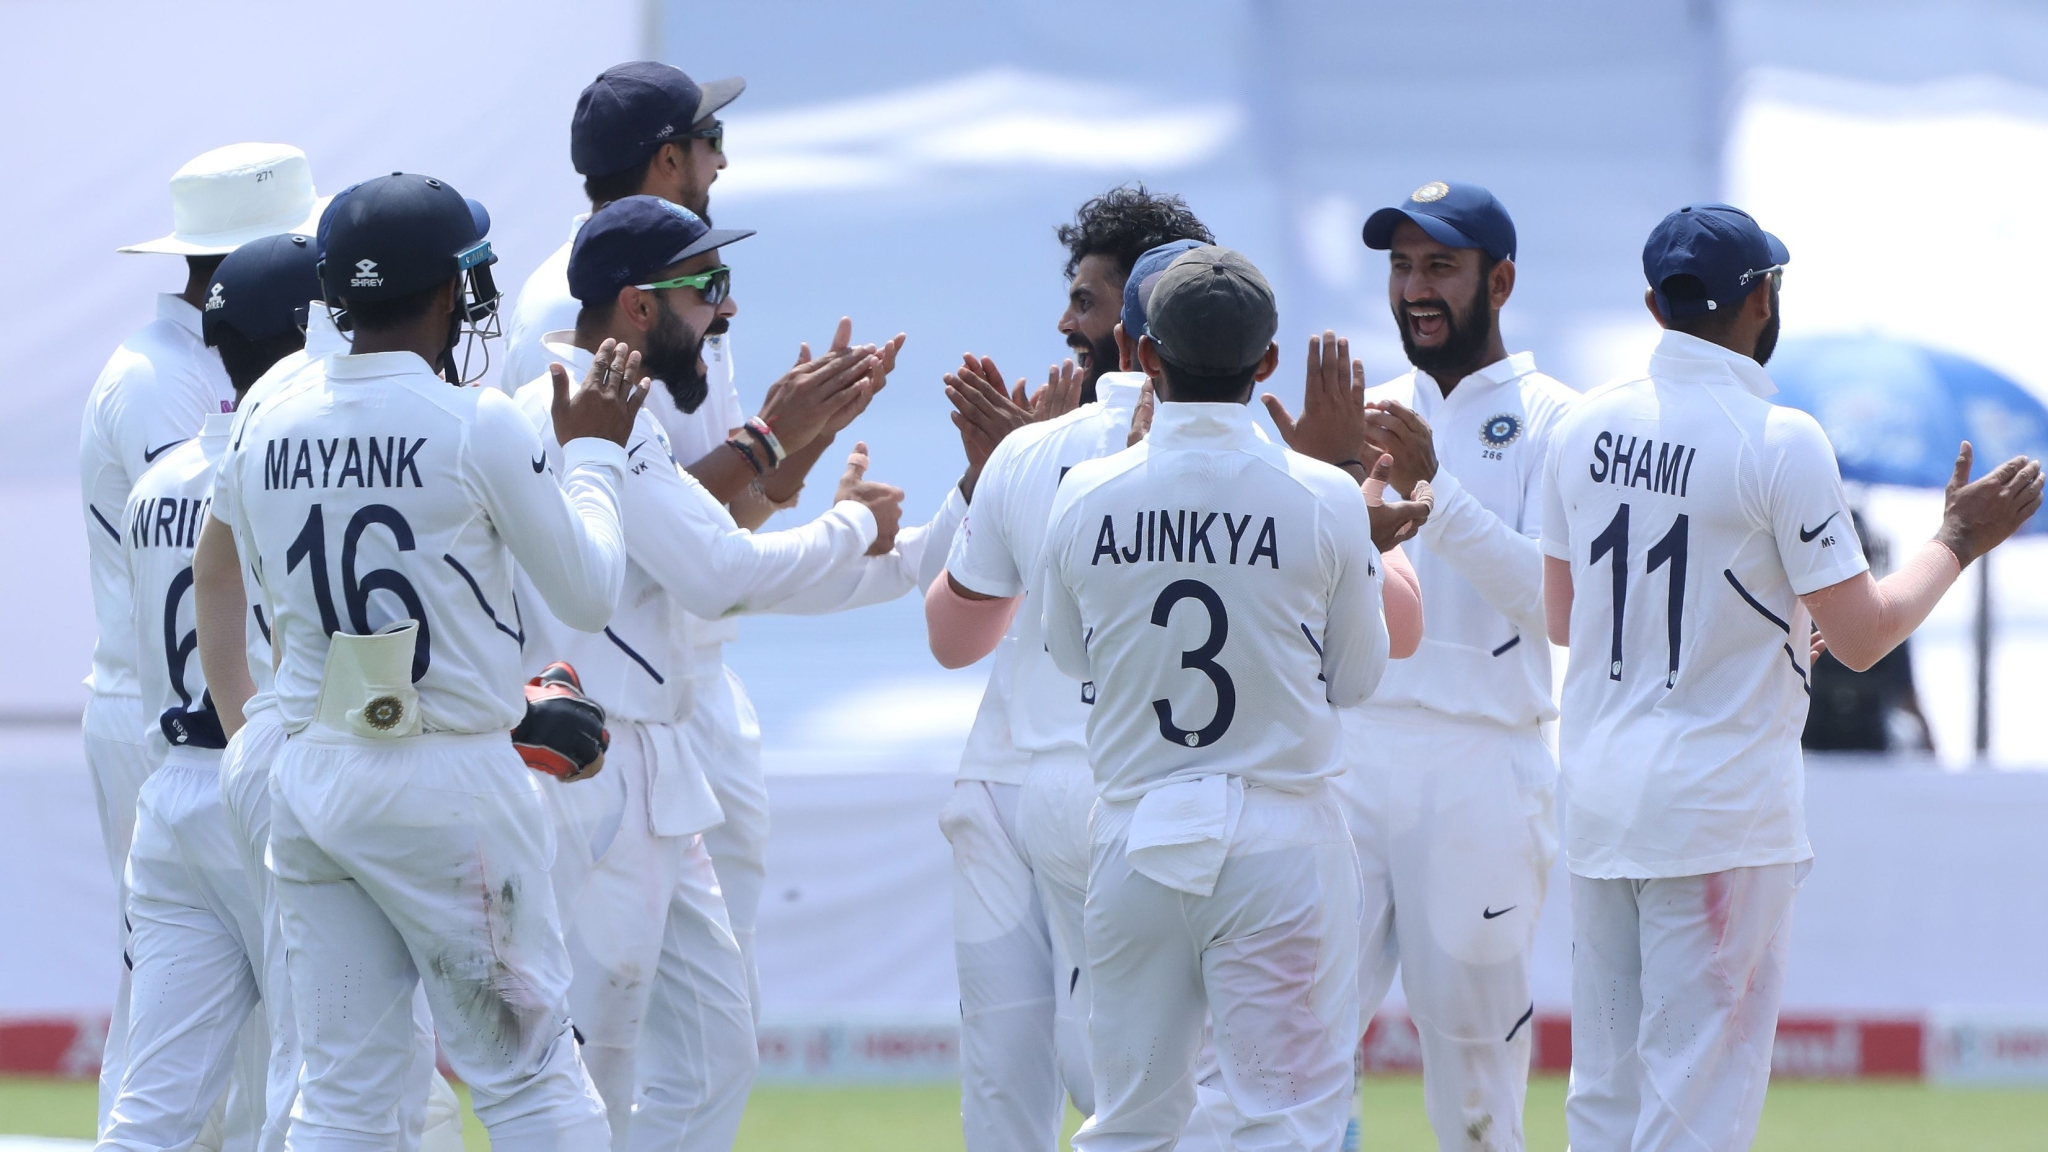 Pune Test, Day 4: Markram Out on 0 After India Enforce Follow-On